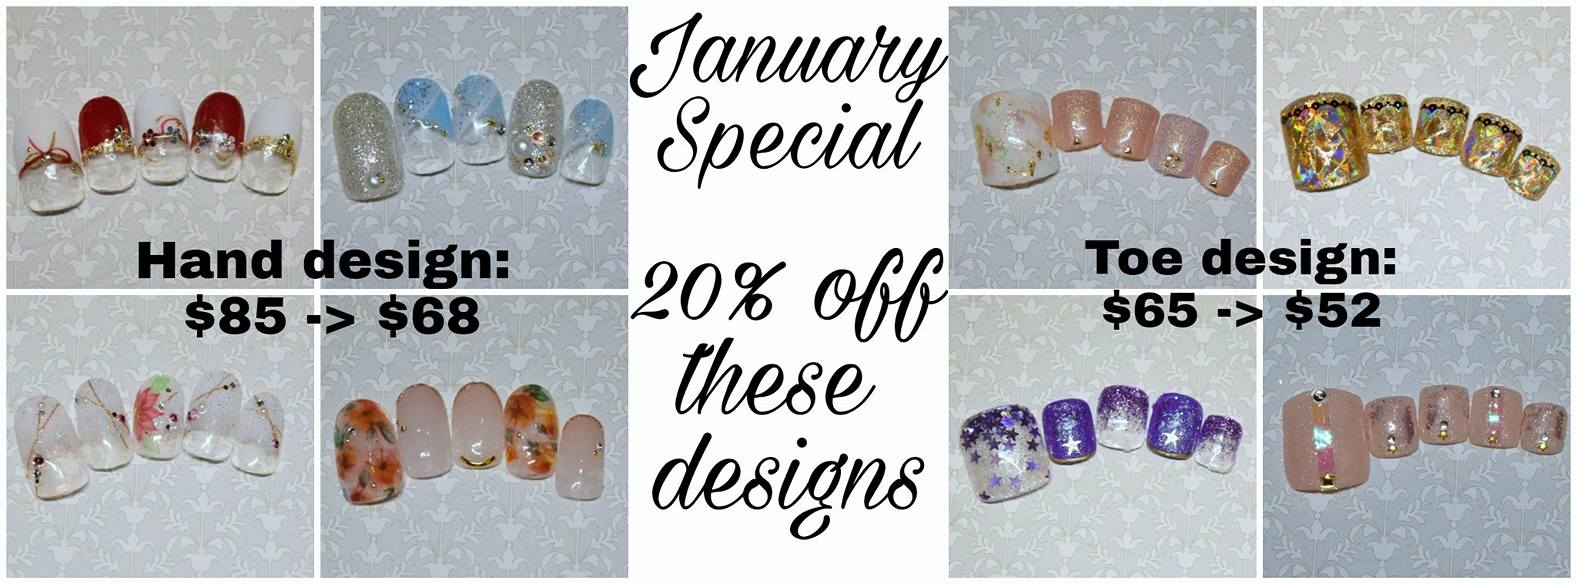 January Specials, Happy New Year! – Salon Glitter